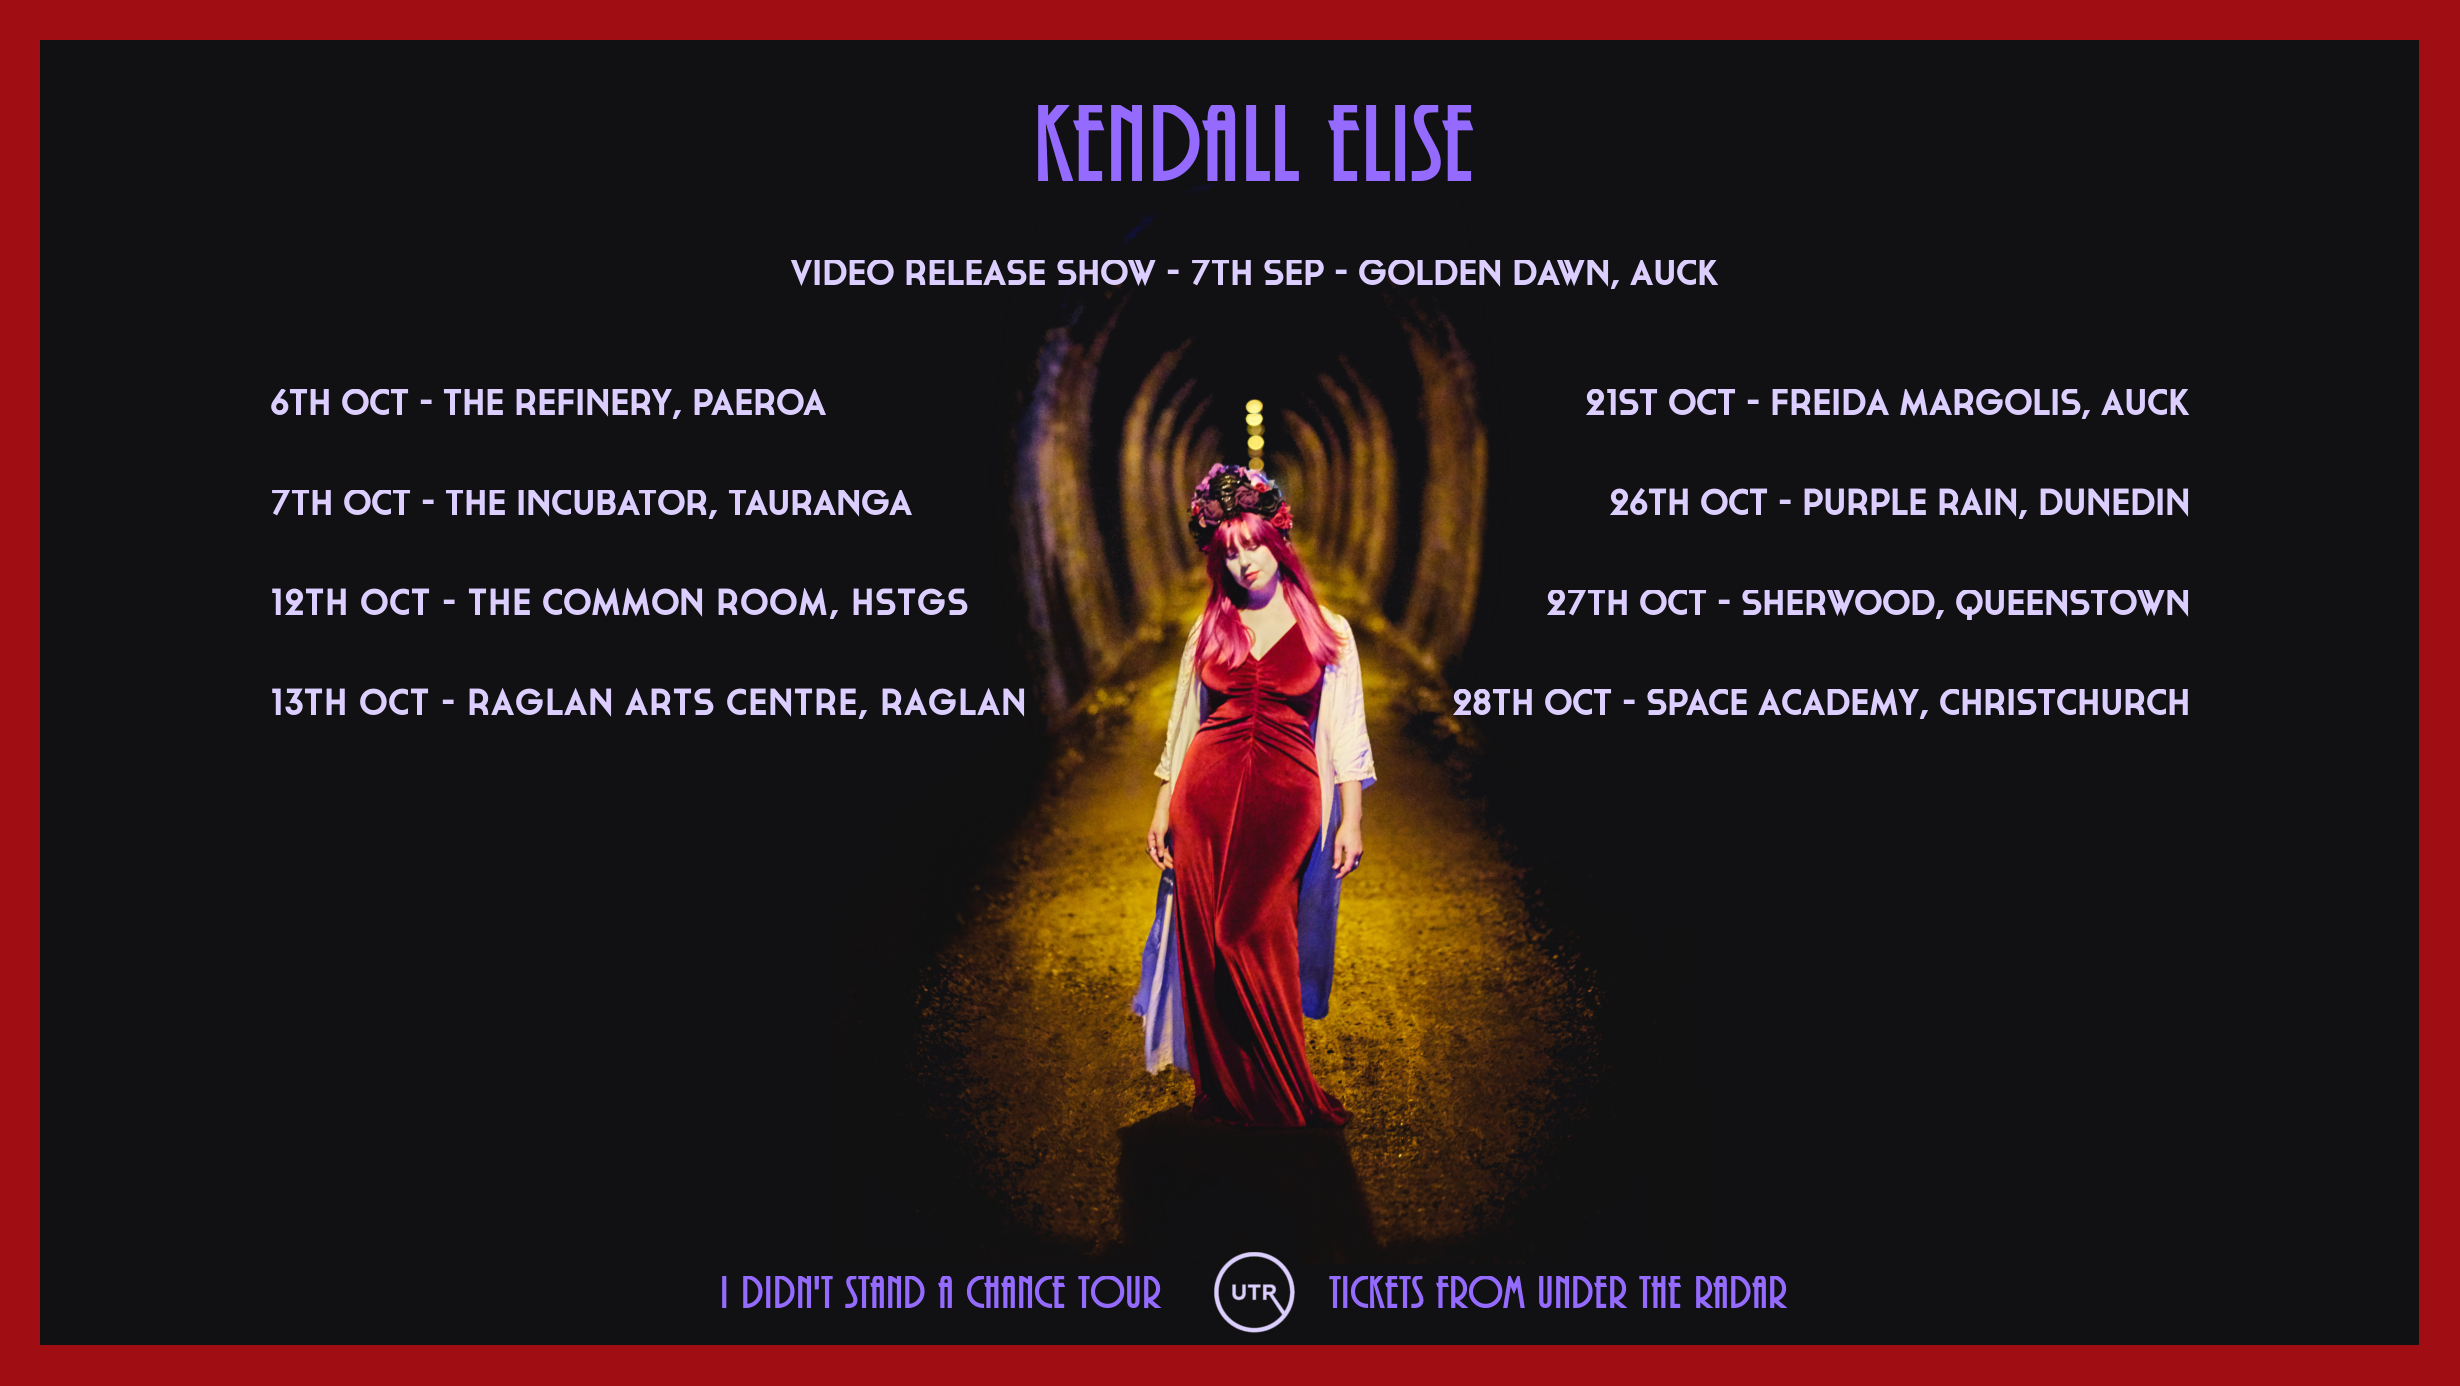 Kendall Elise - I Didnt Stand A Chance Tour